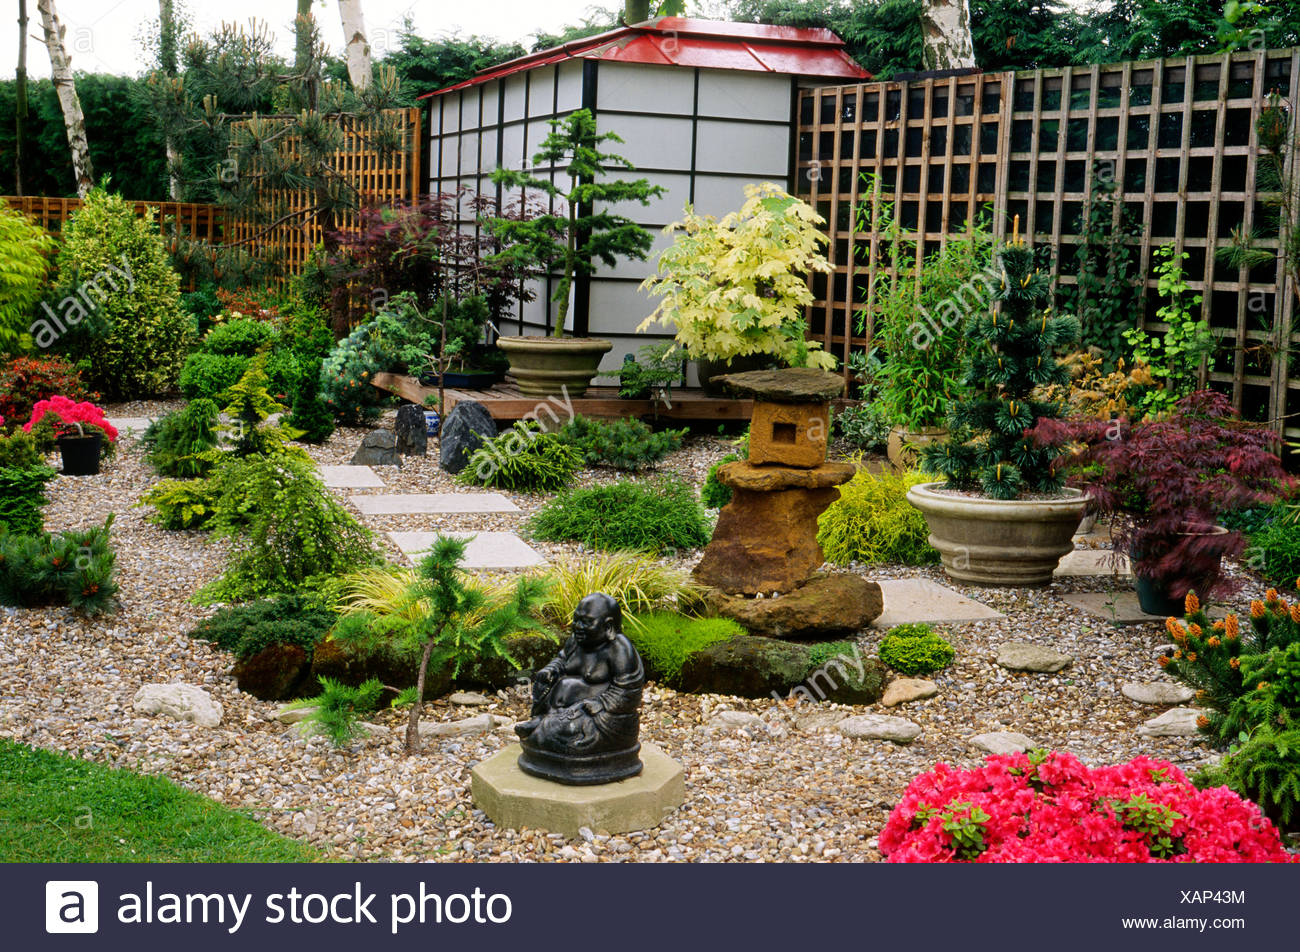 Japanese Style Small Garden England Uk Garden Small Garden Ornaments Buddha Gravel Miniature Trees Acers Pavilion Design Stock Photo Alamy